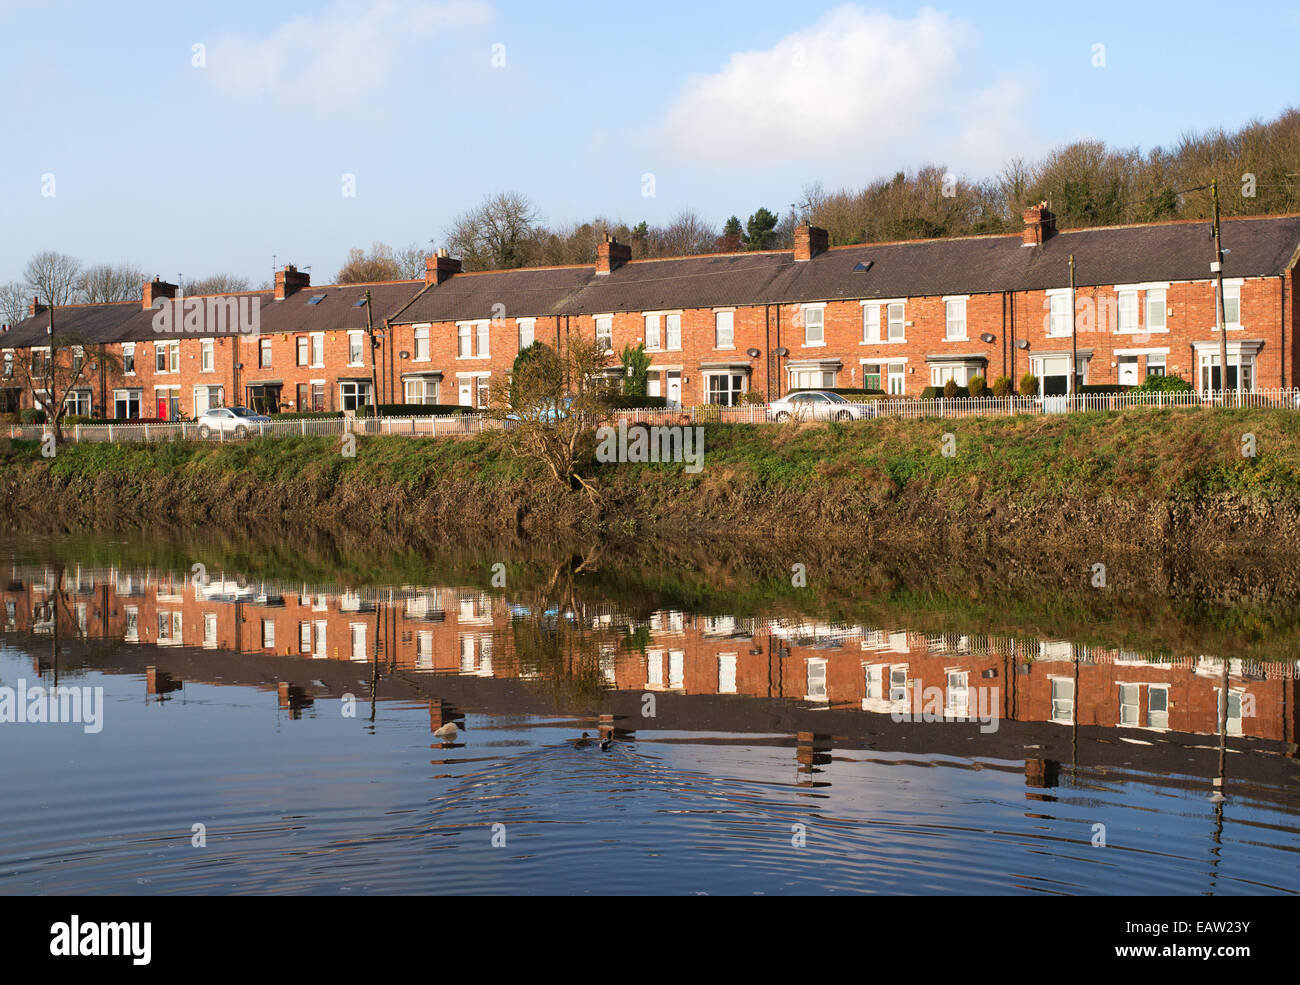 South View, a row of terraced houses reflected in river Wear, Fatfield, north east England, UK - Stock Image